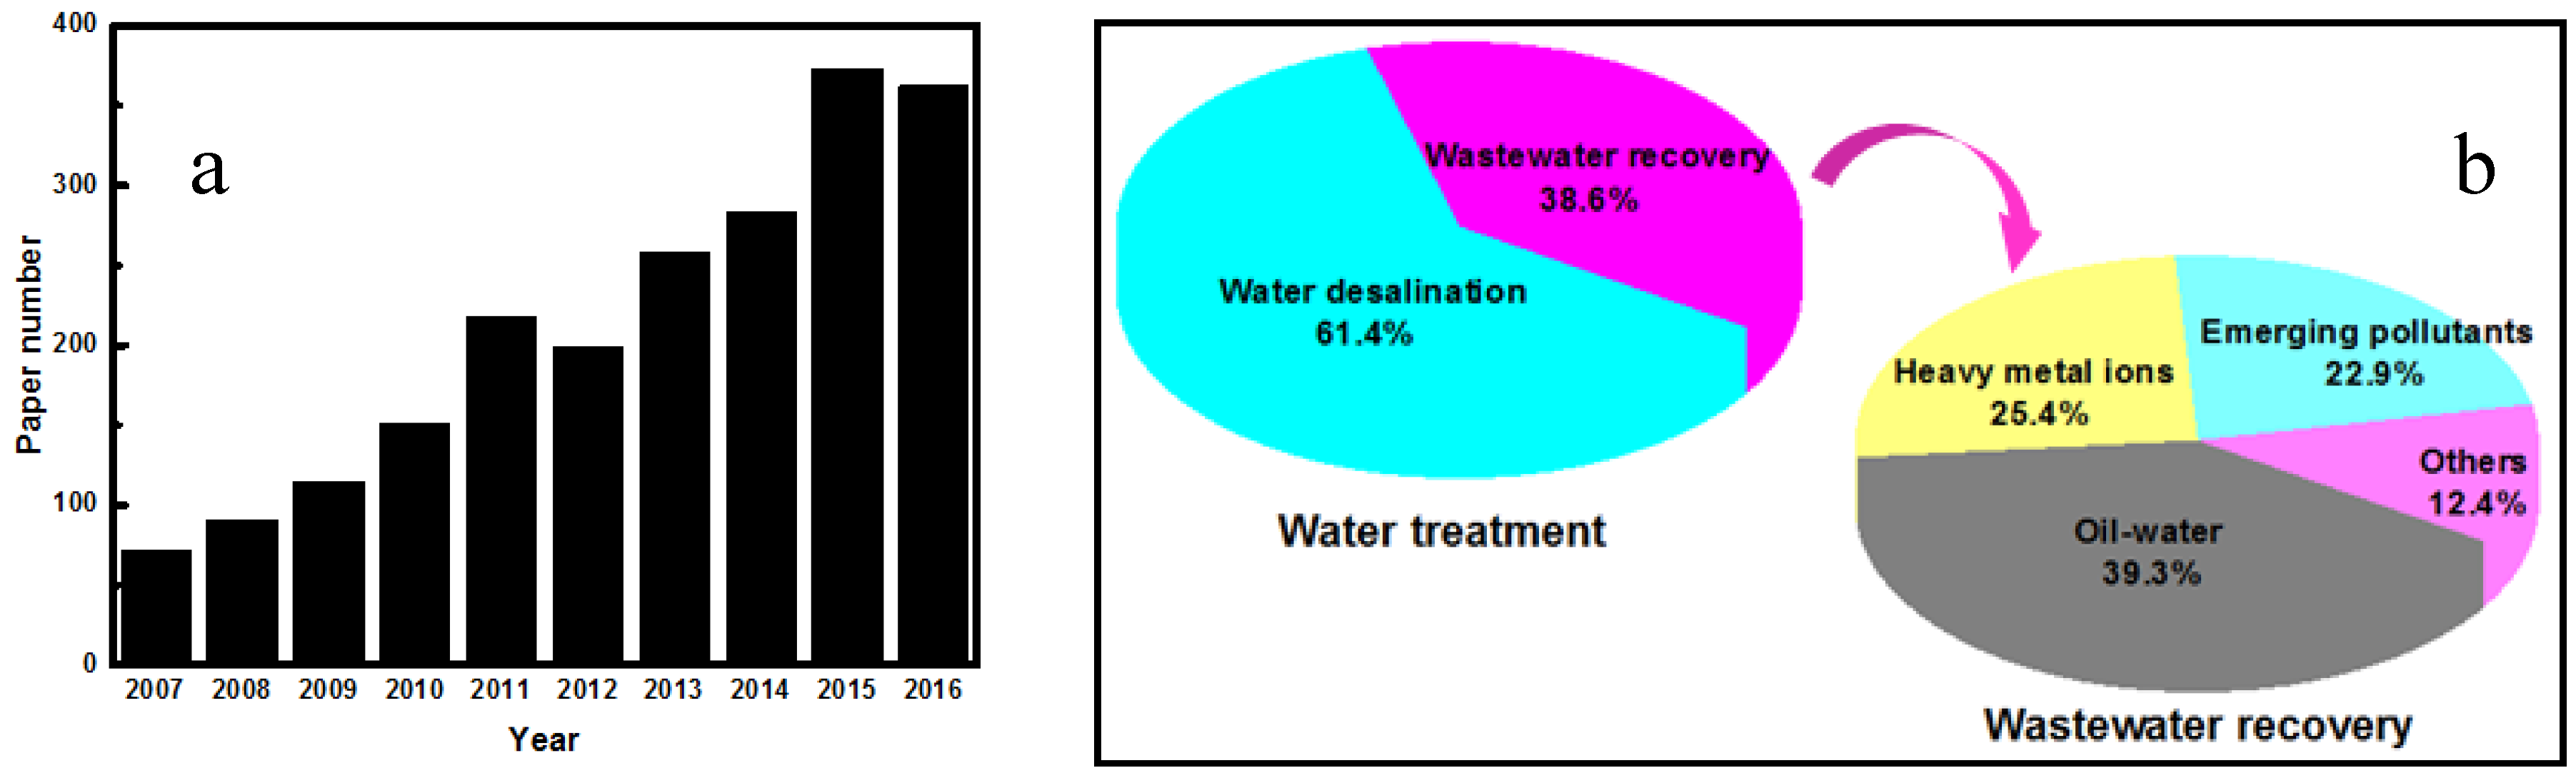 desalination research paper